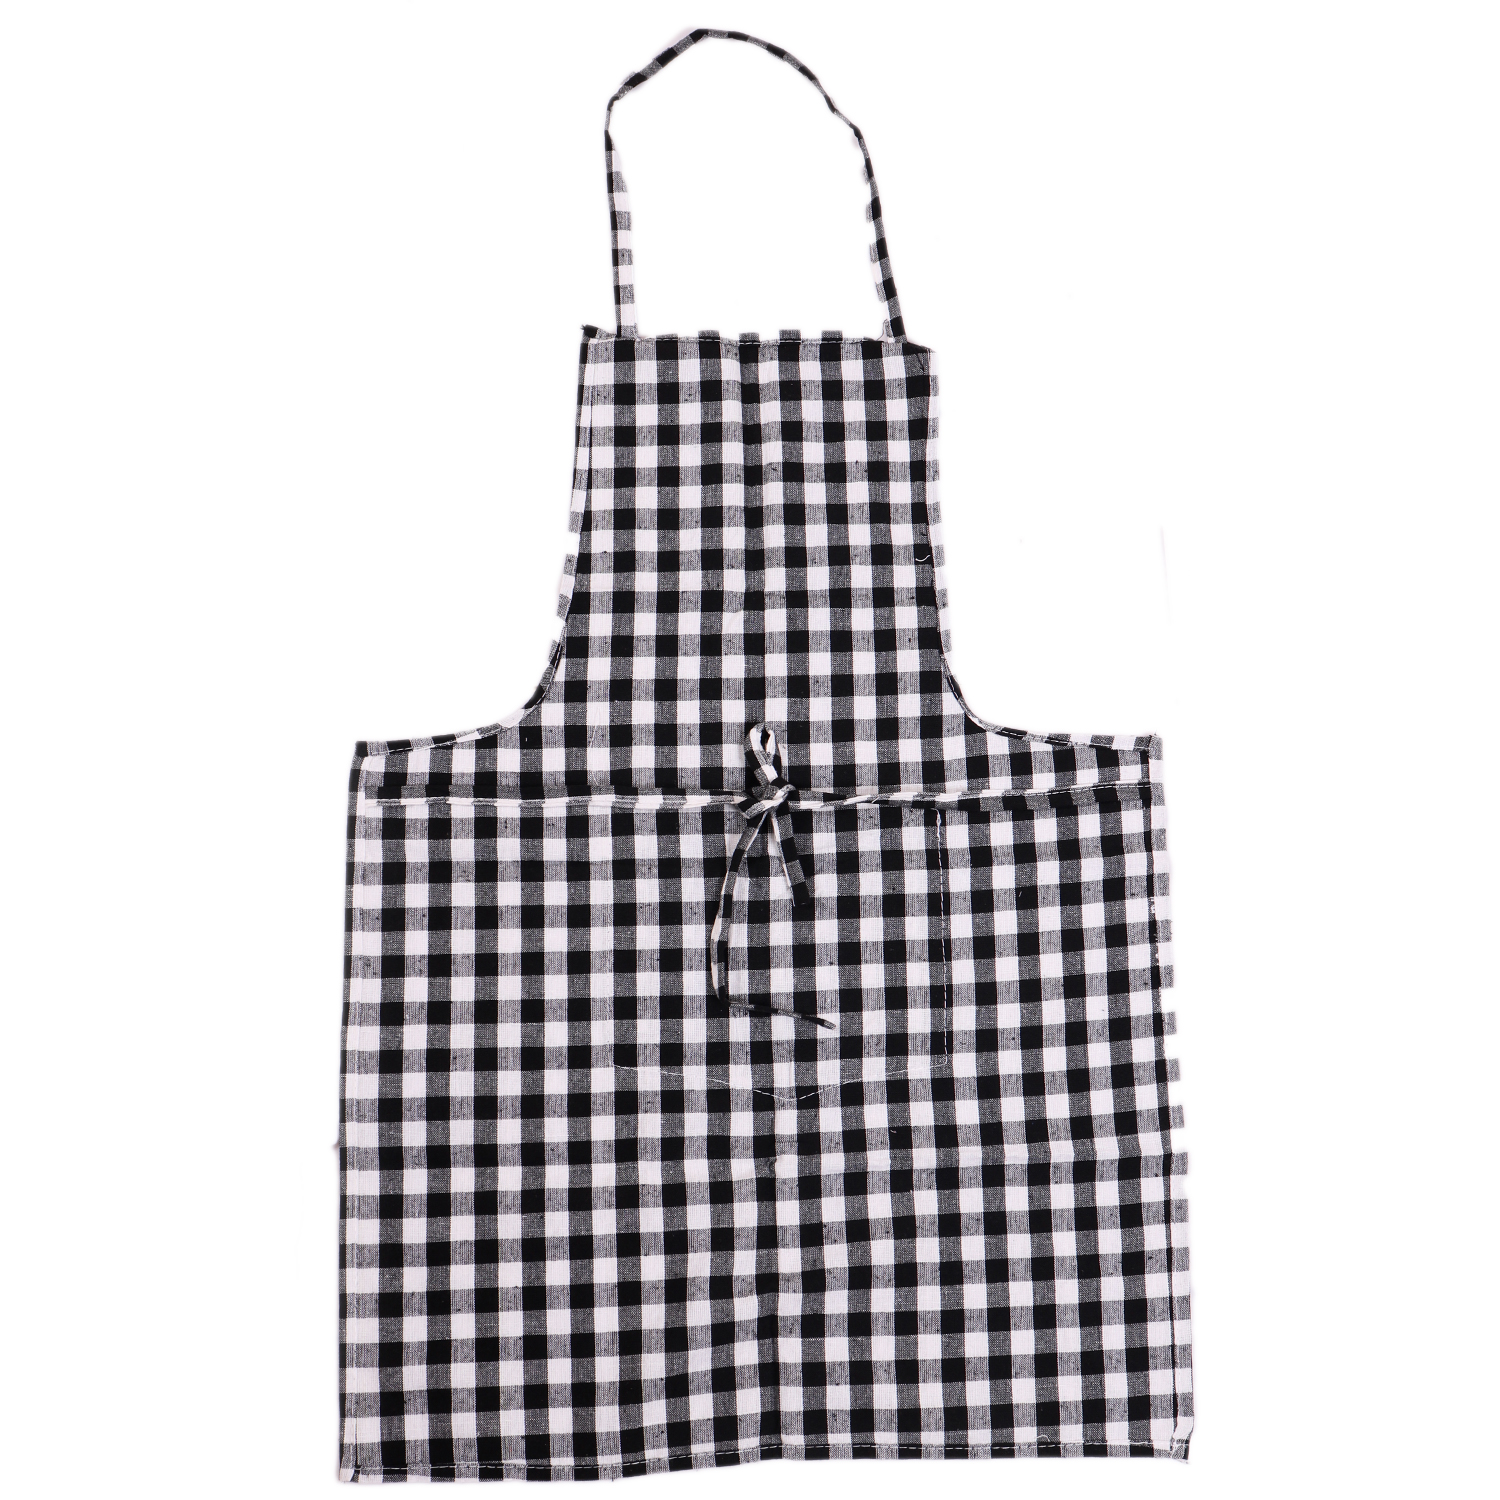 Kuber Industries Checkered Design 3 Pieces Kitchen Apron with Front Pocket (Red, Black & Yellow)-CTKTC32637